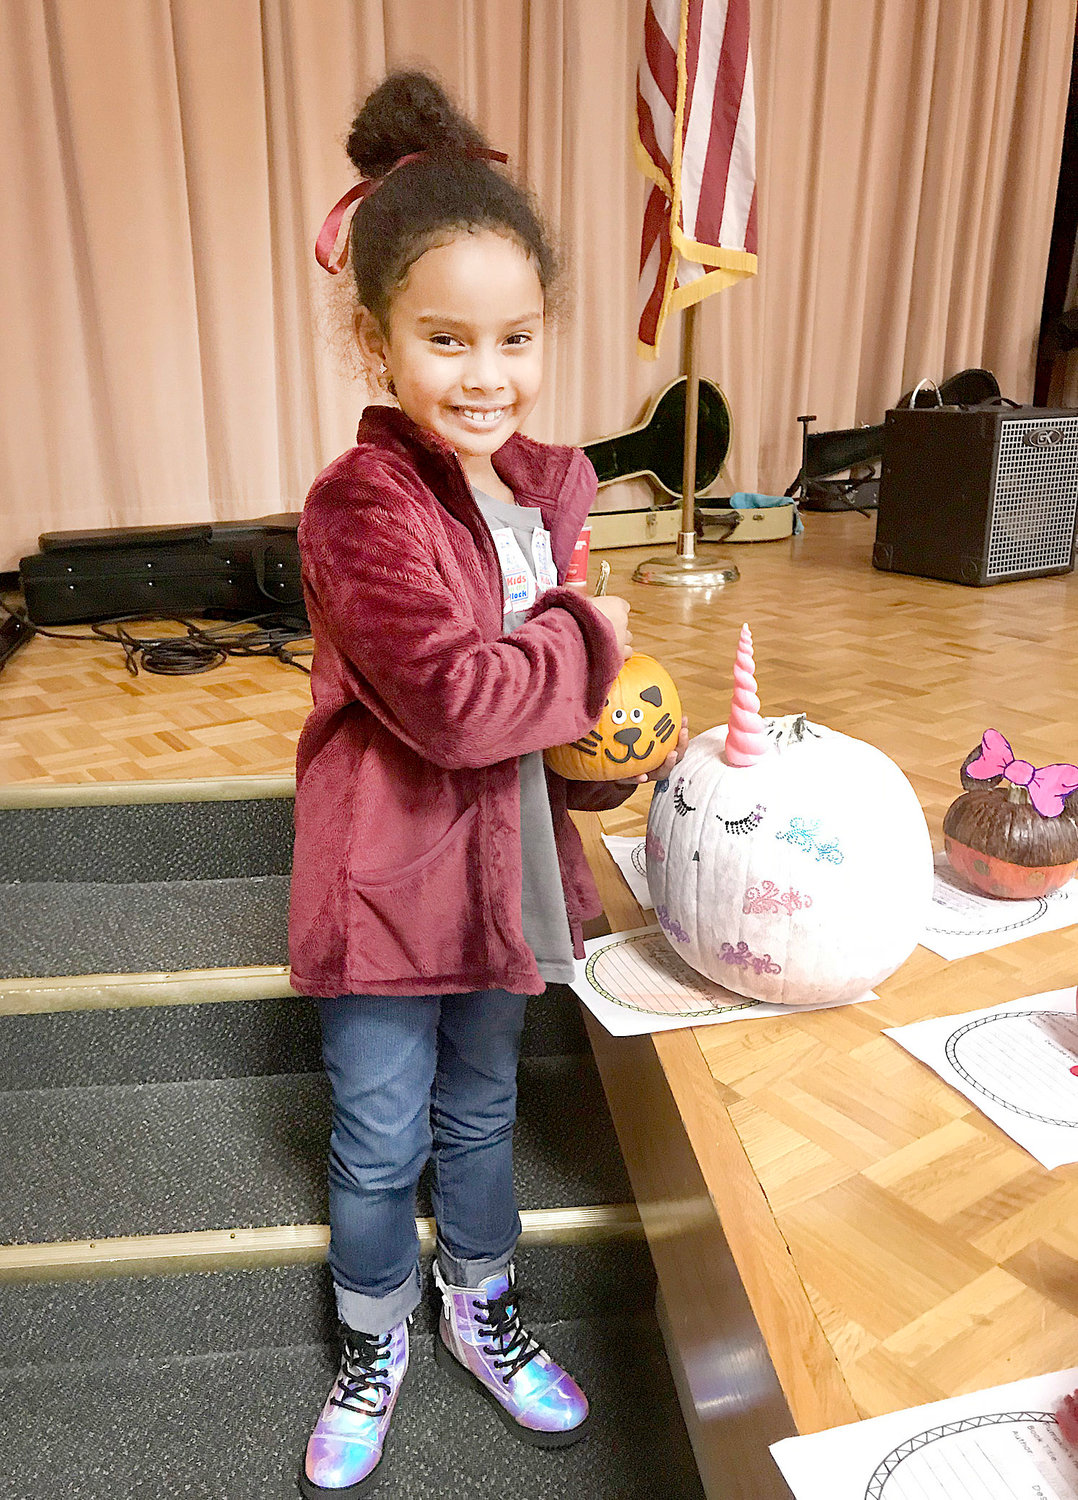 Kate Guevara shows off her storybook pumpkins and her shiny shoes during the 2018 Fall Harvest Hoedown, at Blythe-Bower Elementary.